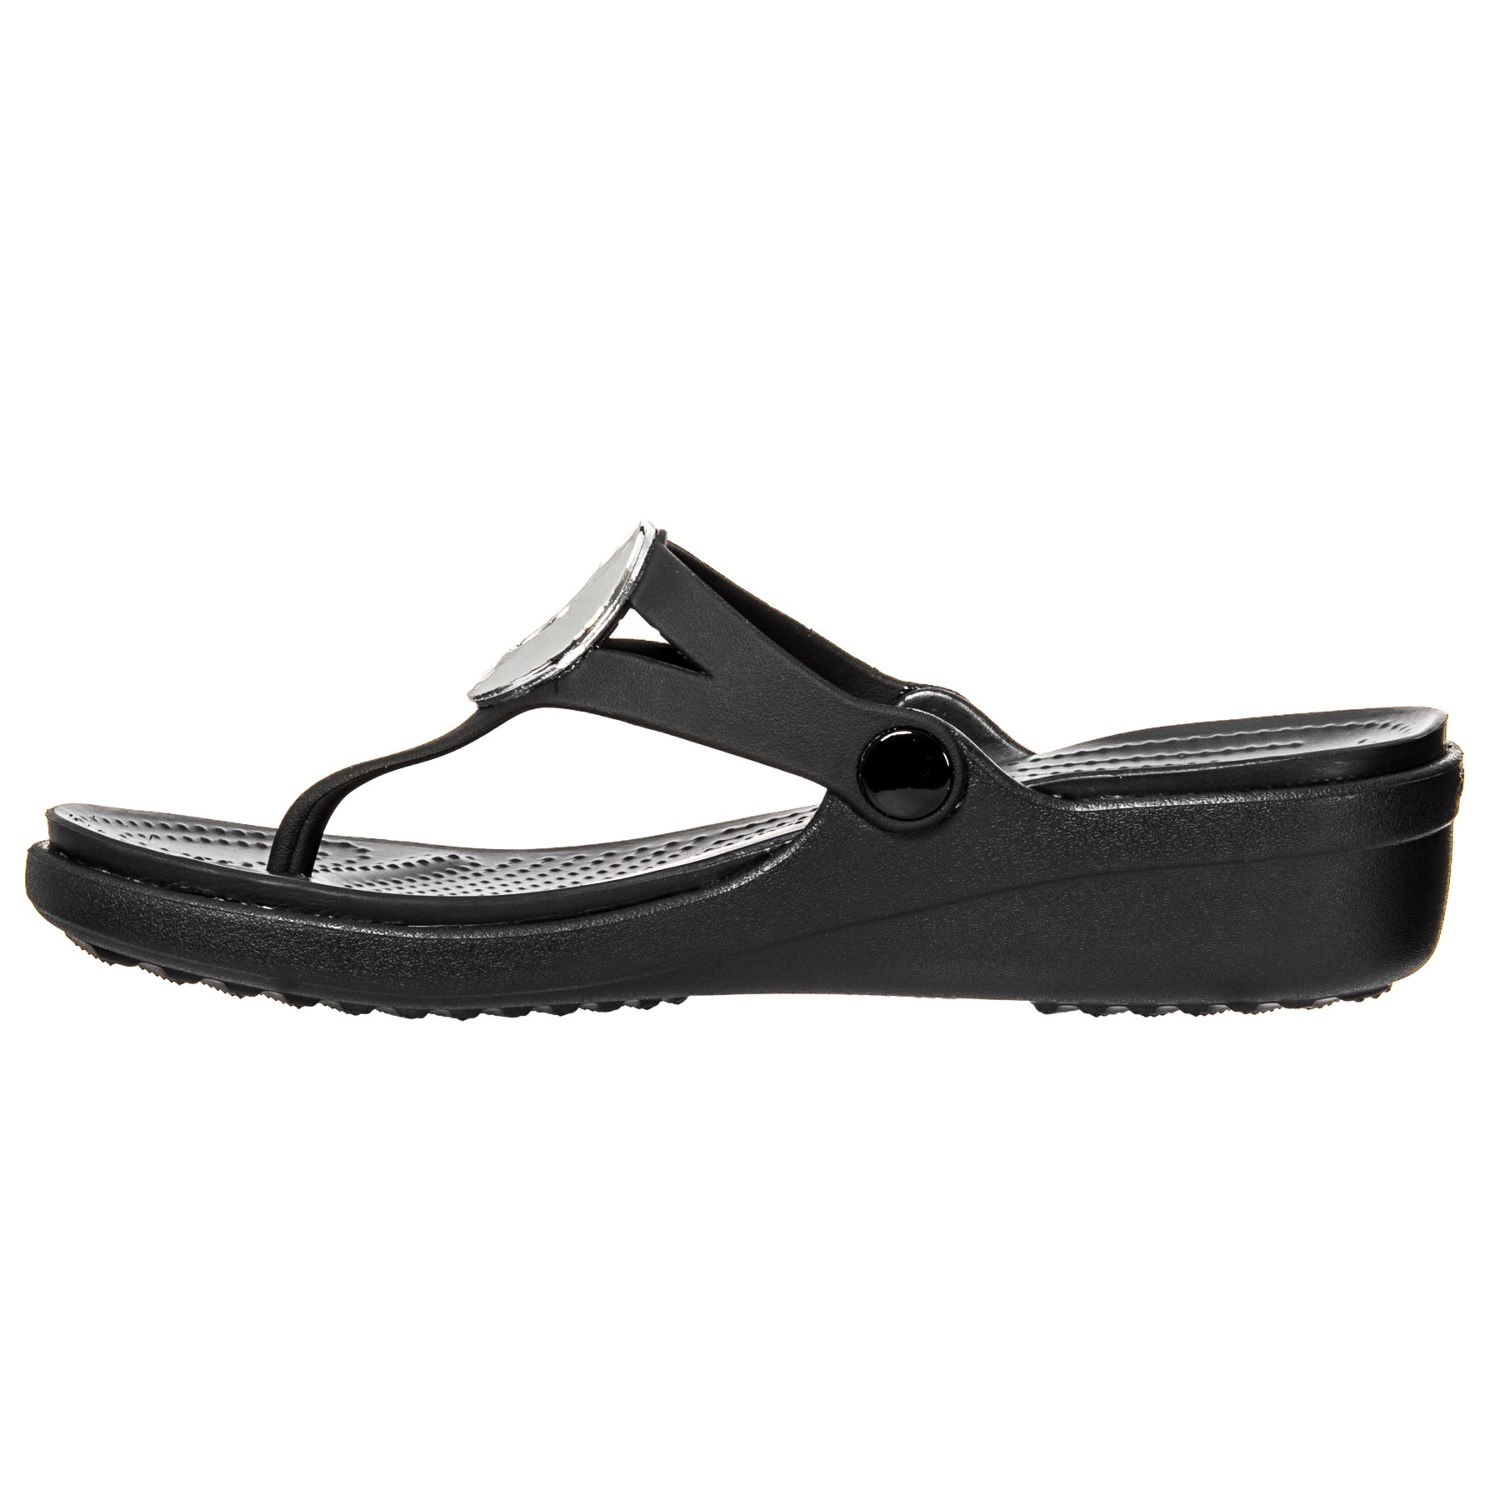 2d7c306ef168 Crocs Sanrah Hammered Metallic Wedge Flip-Flops (For Women) - Save 55%